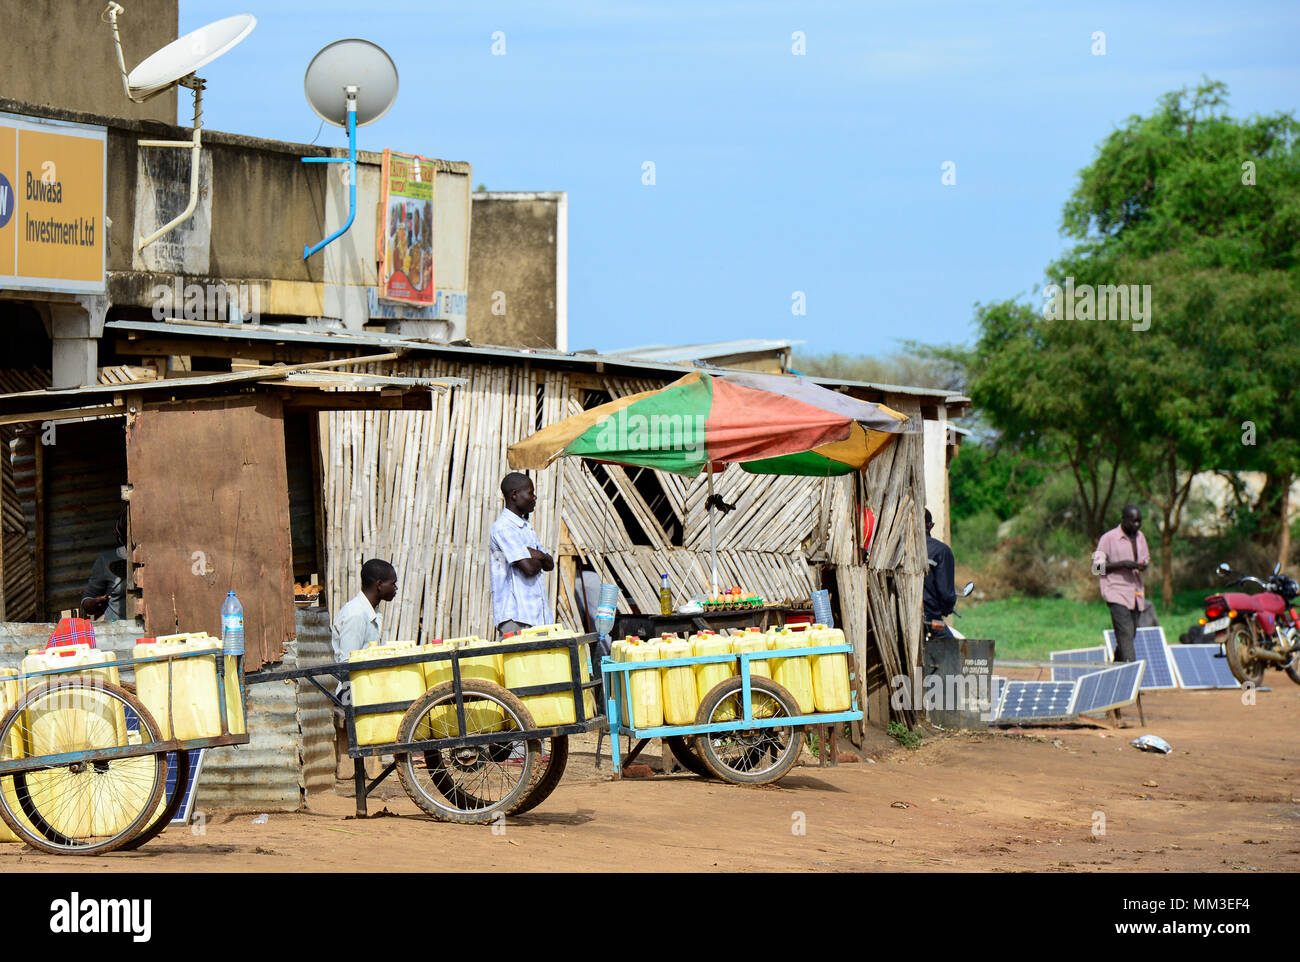 UGANDA, Karamoja, Kotido, Karamojong pastoral tribe, jerry cans for water transport and solar panels for power generation and battery recharging - Stock Image